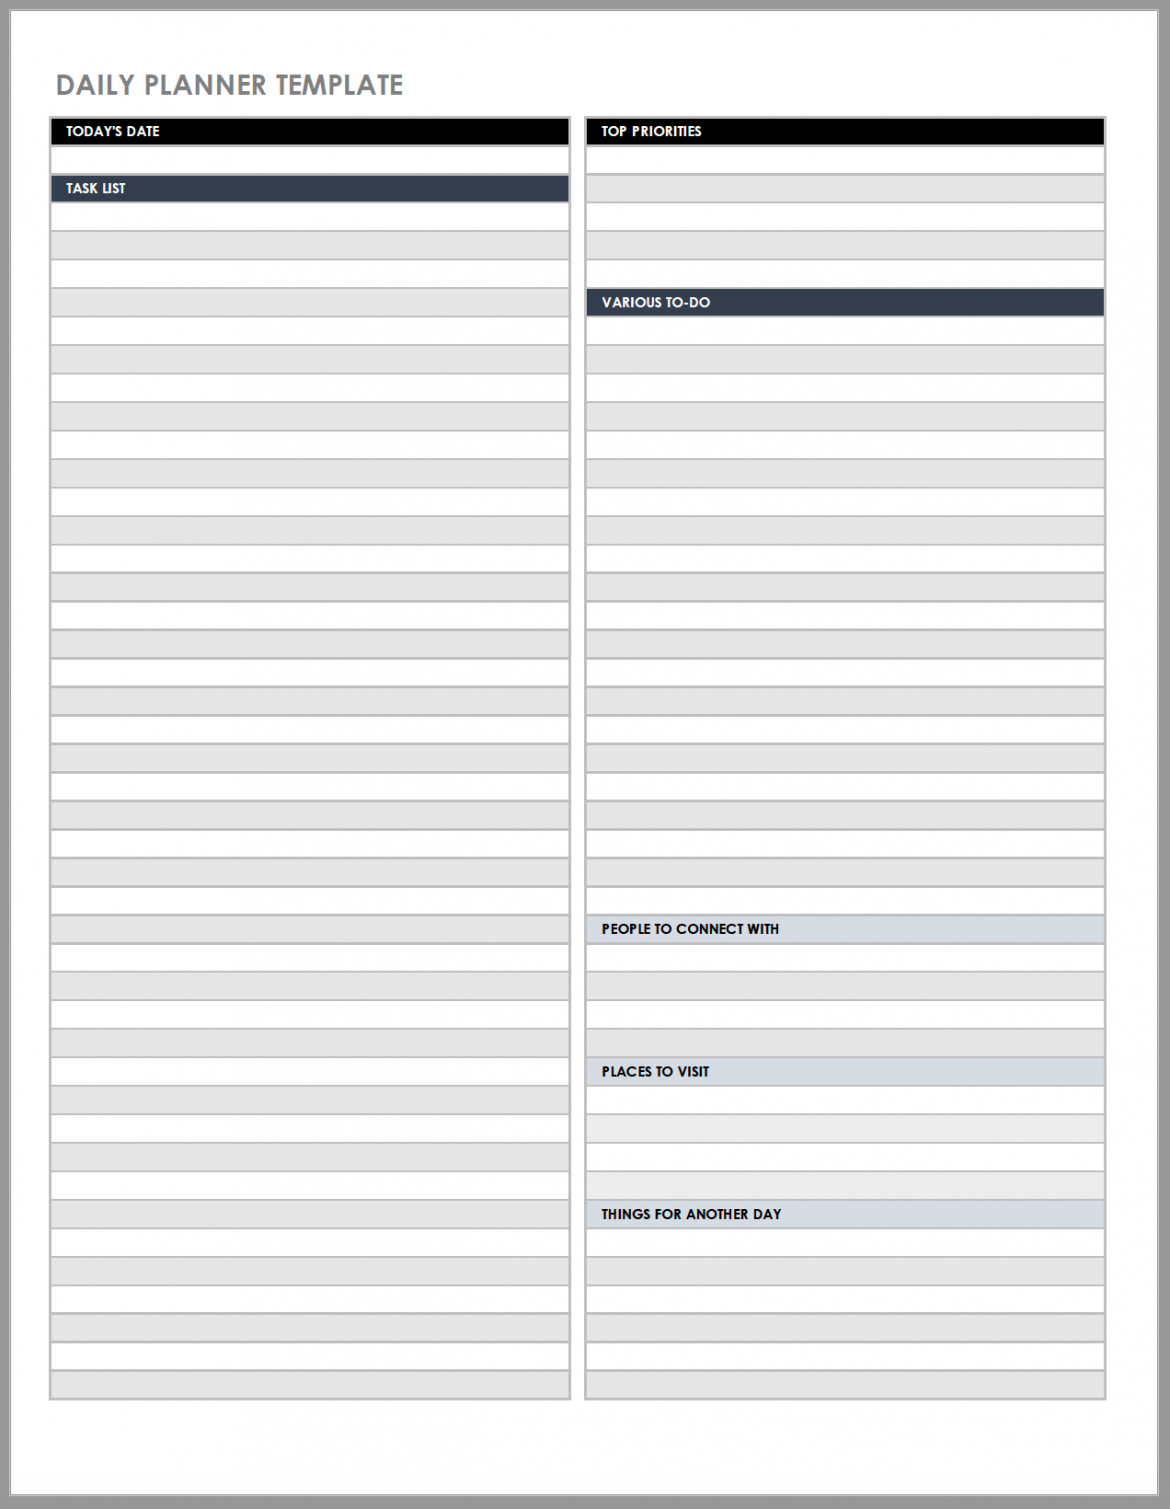 free free daily work schedule templates  smartsheet daily task schedule template sample